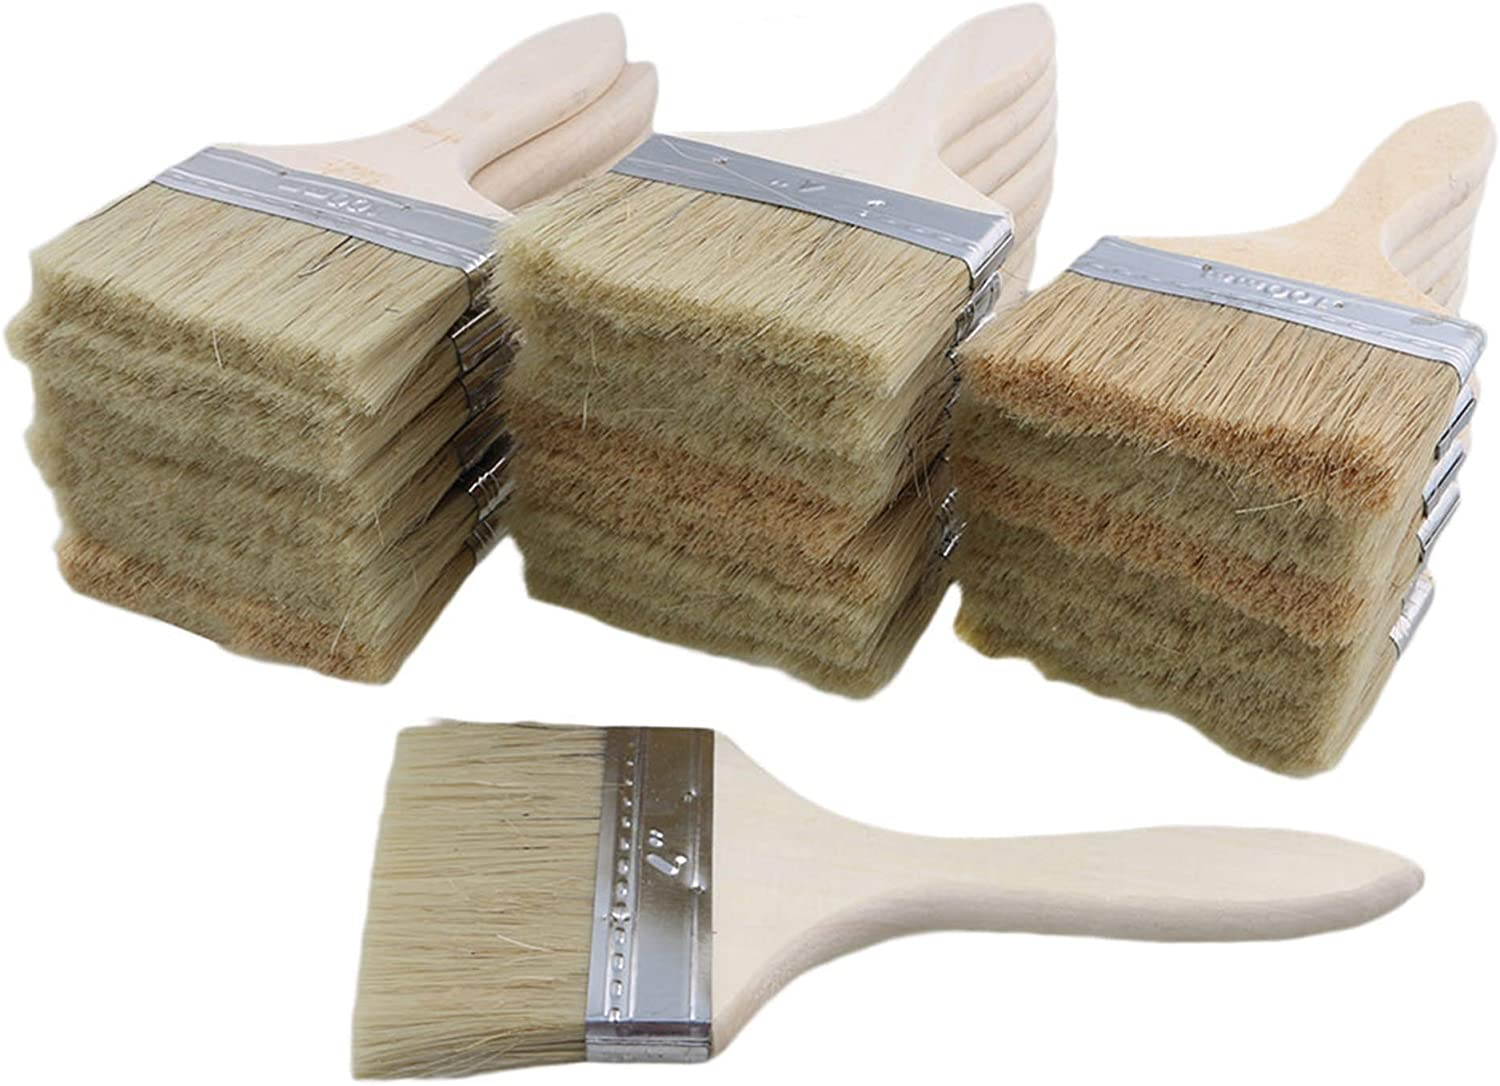 Paint Stains Brush Wood Handles Finally popular brand Chip Inch of Pack 4 20 Weekly update